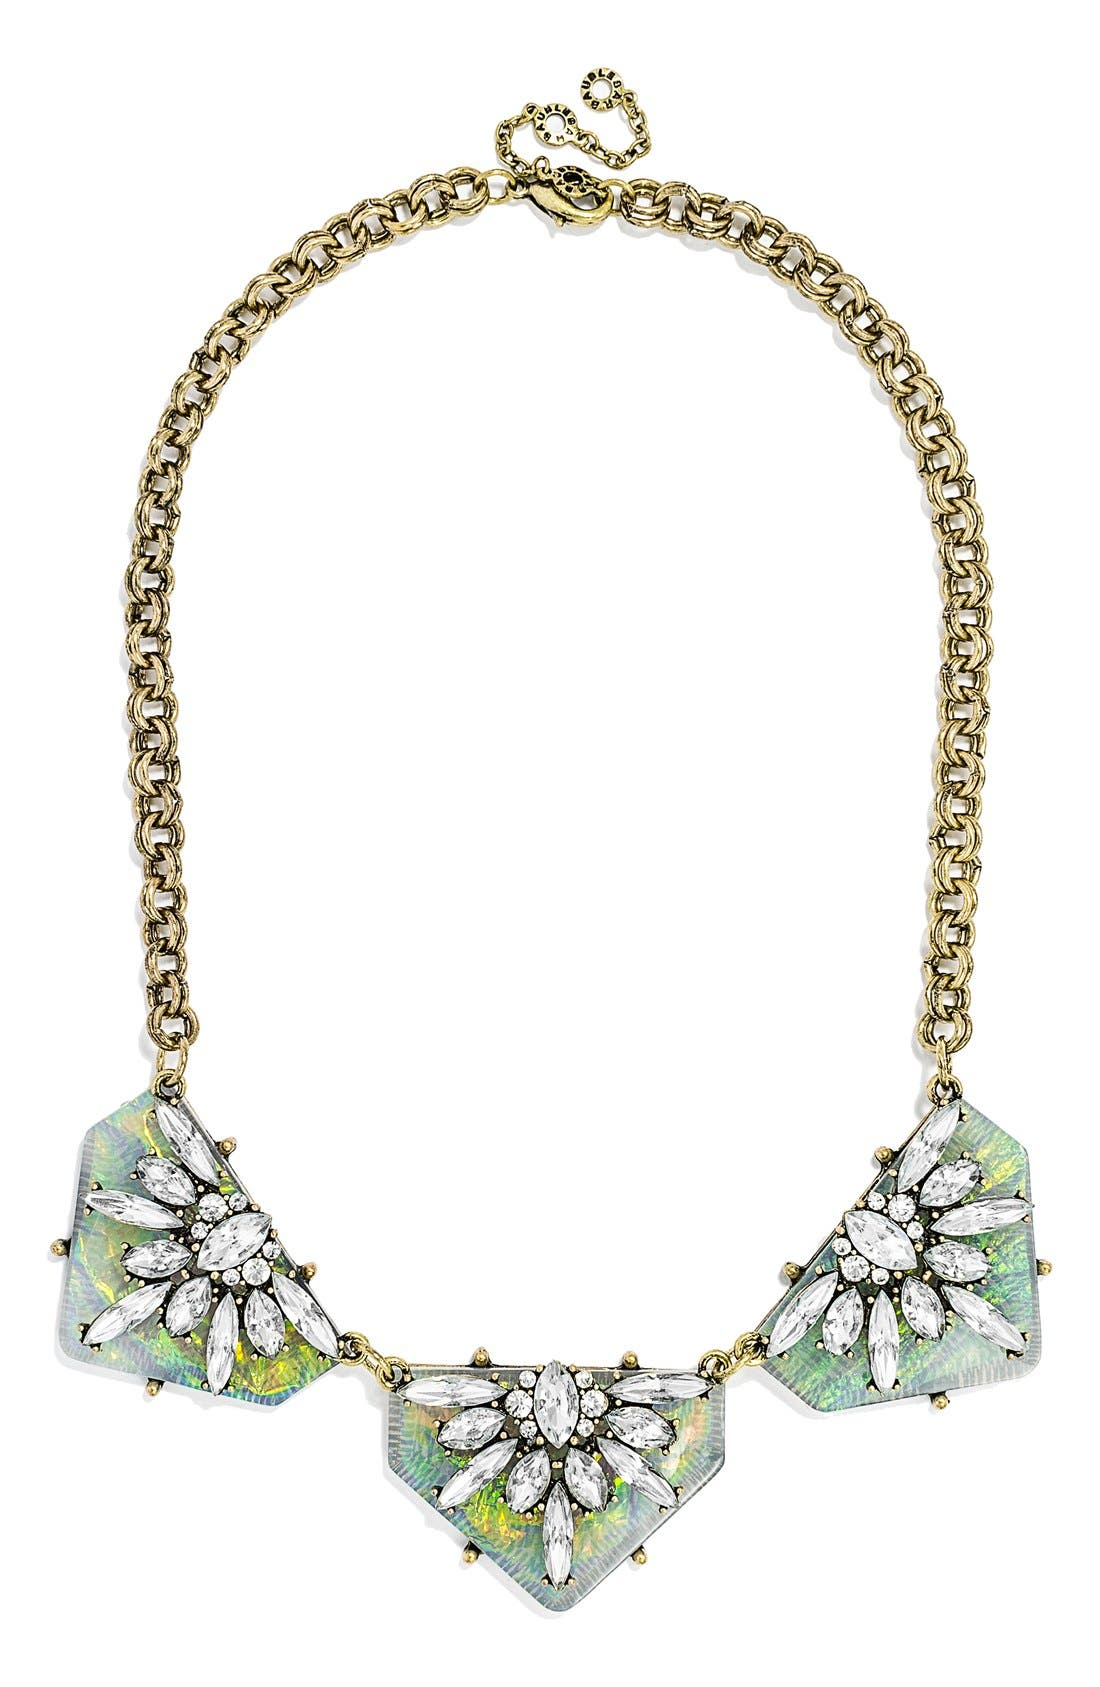 Main Image - BaubleBar 'Crystal Prism' Collar Necklace